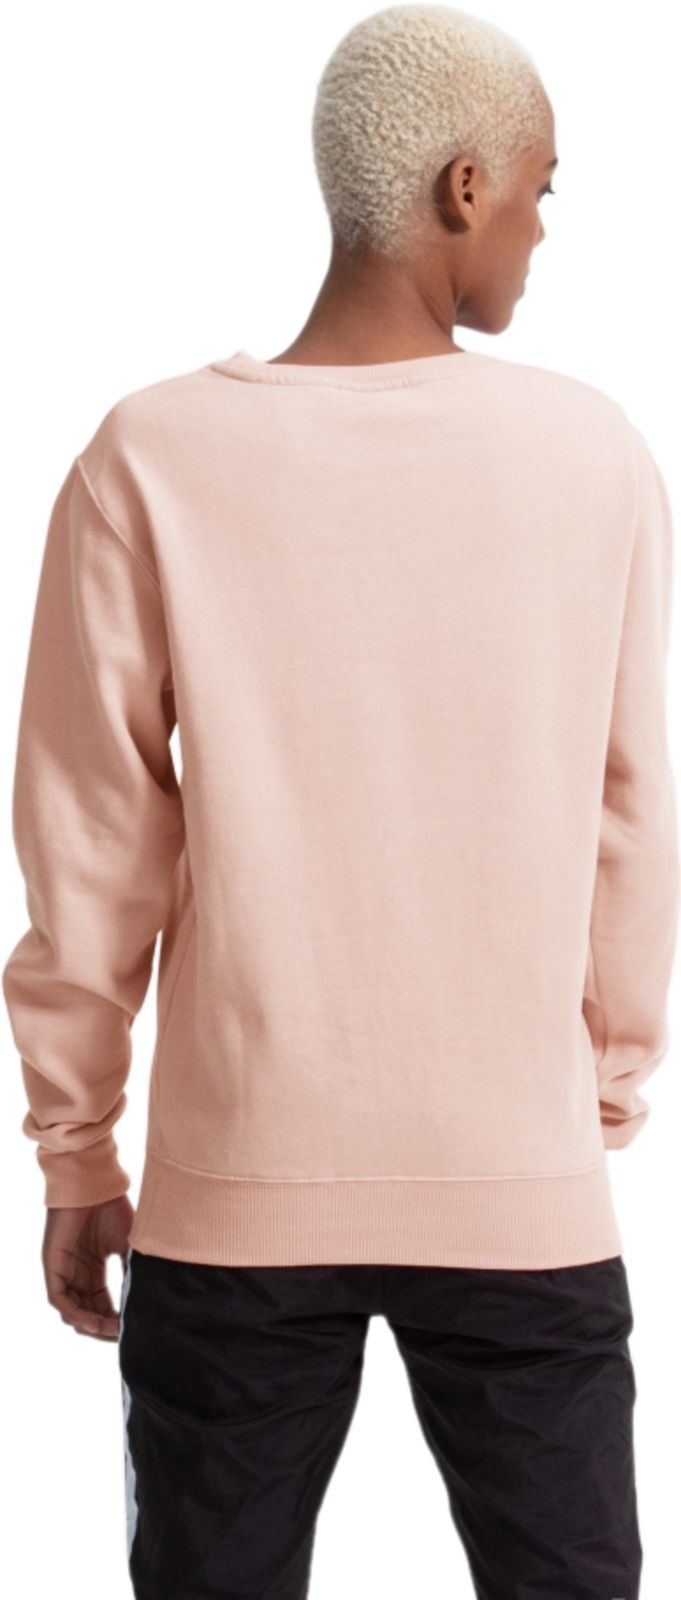 Ellesse Agata Sweatshirt Light Pink